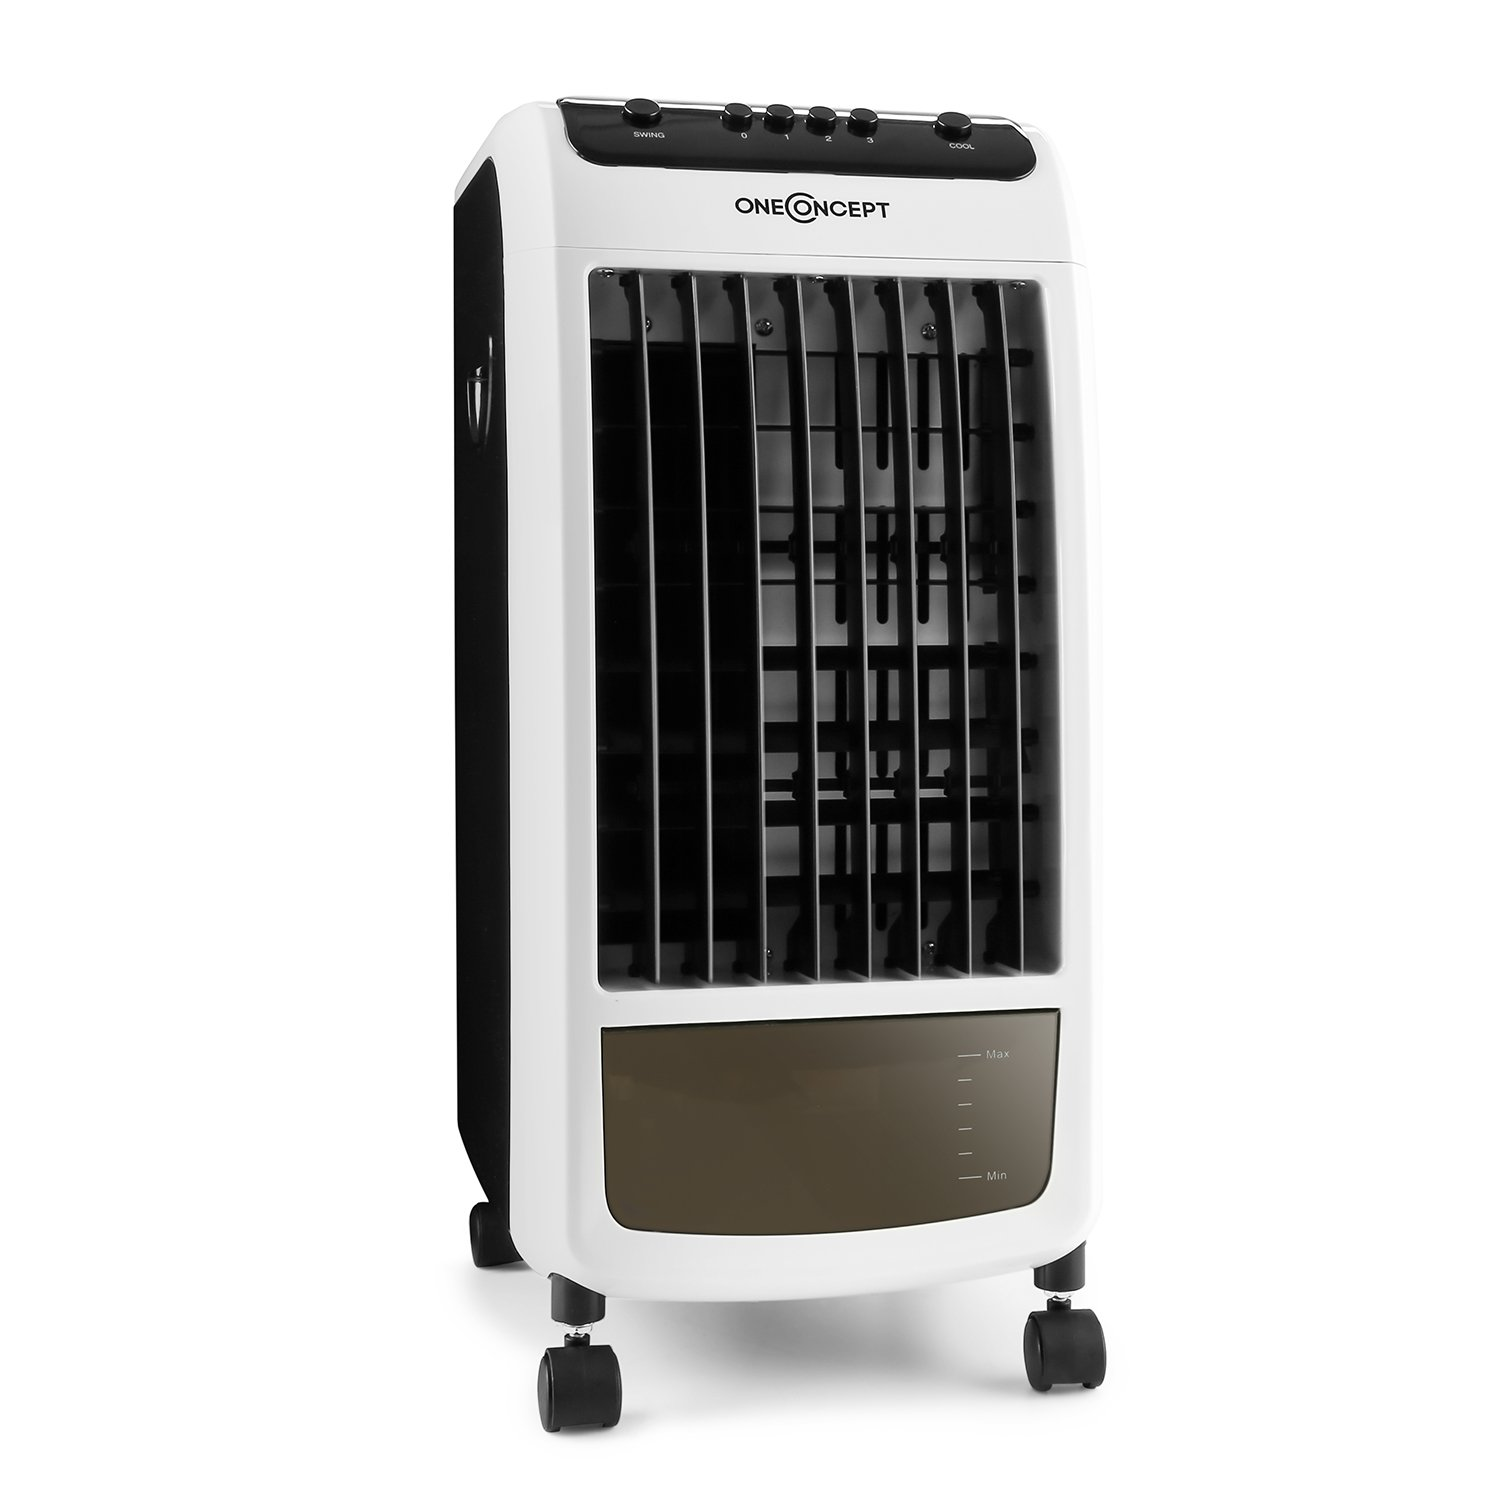 oneConcept Caribbean Blue 3-in-1 Combination Device • Air Cooler • Fan • Air Freshener • 70W • Fan with 3 Speed Levels • Moves up to 400m³ Air in One Hour • Environmental Friendly • Air Cooling by Water Evaporation • 6 Funtion Keys • Black/White ACO3-Carri